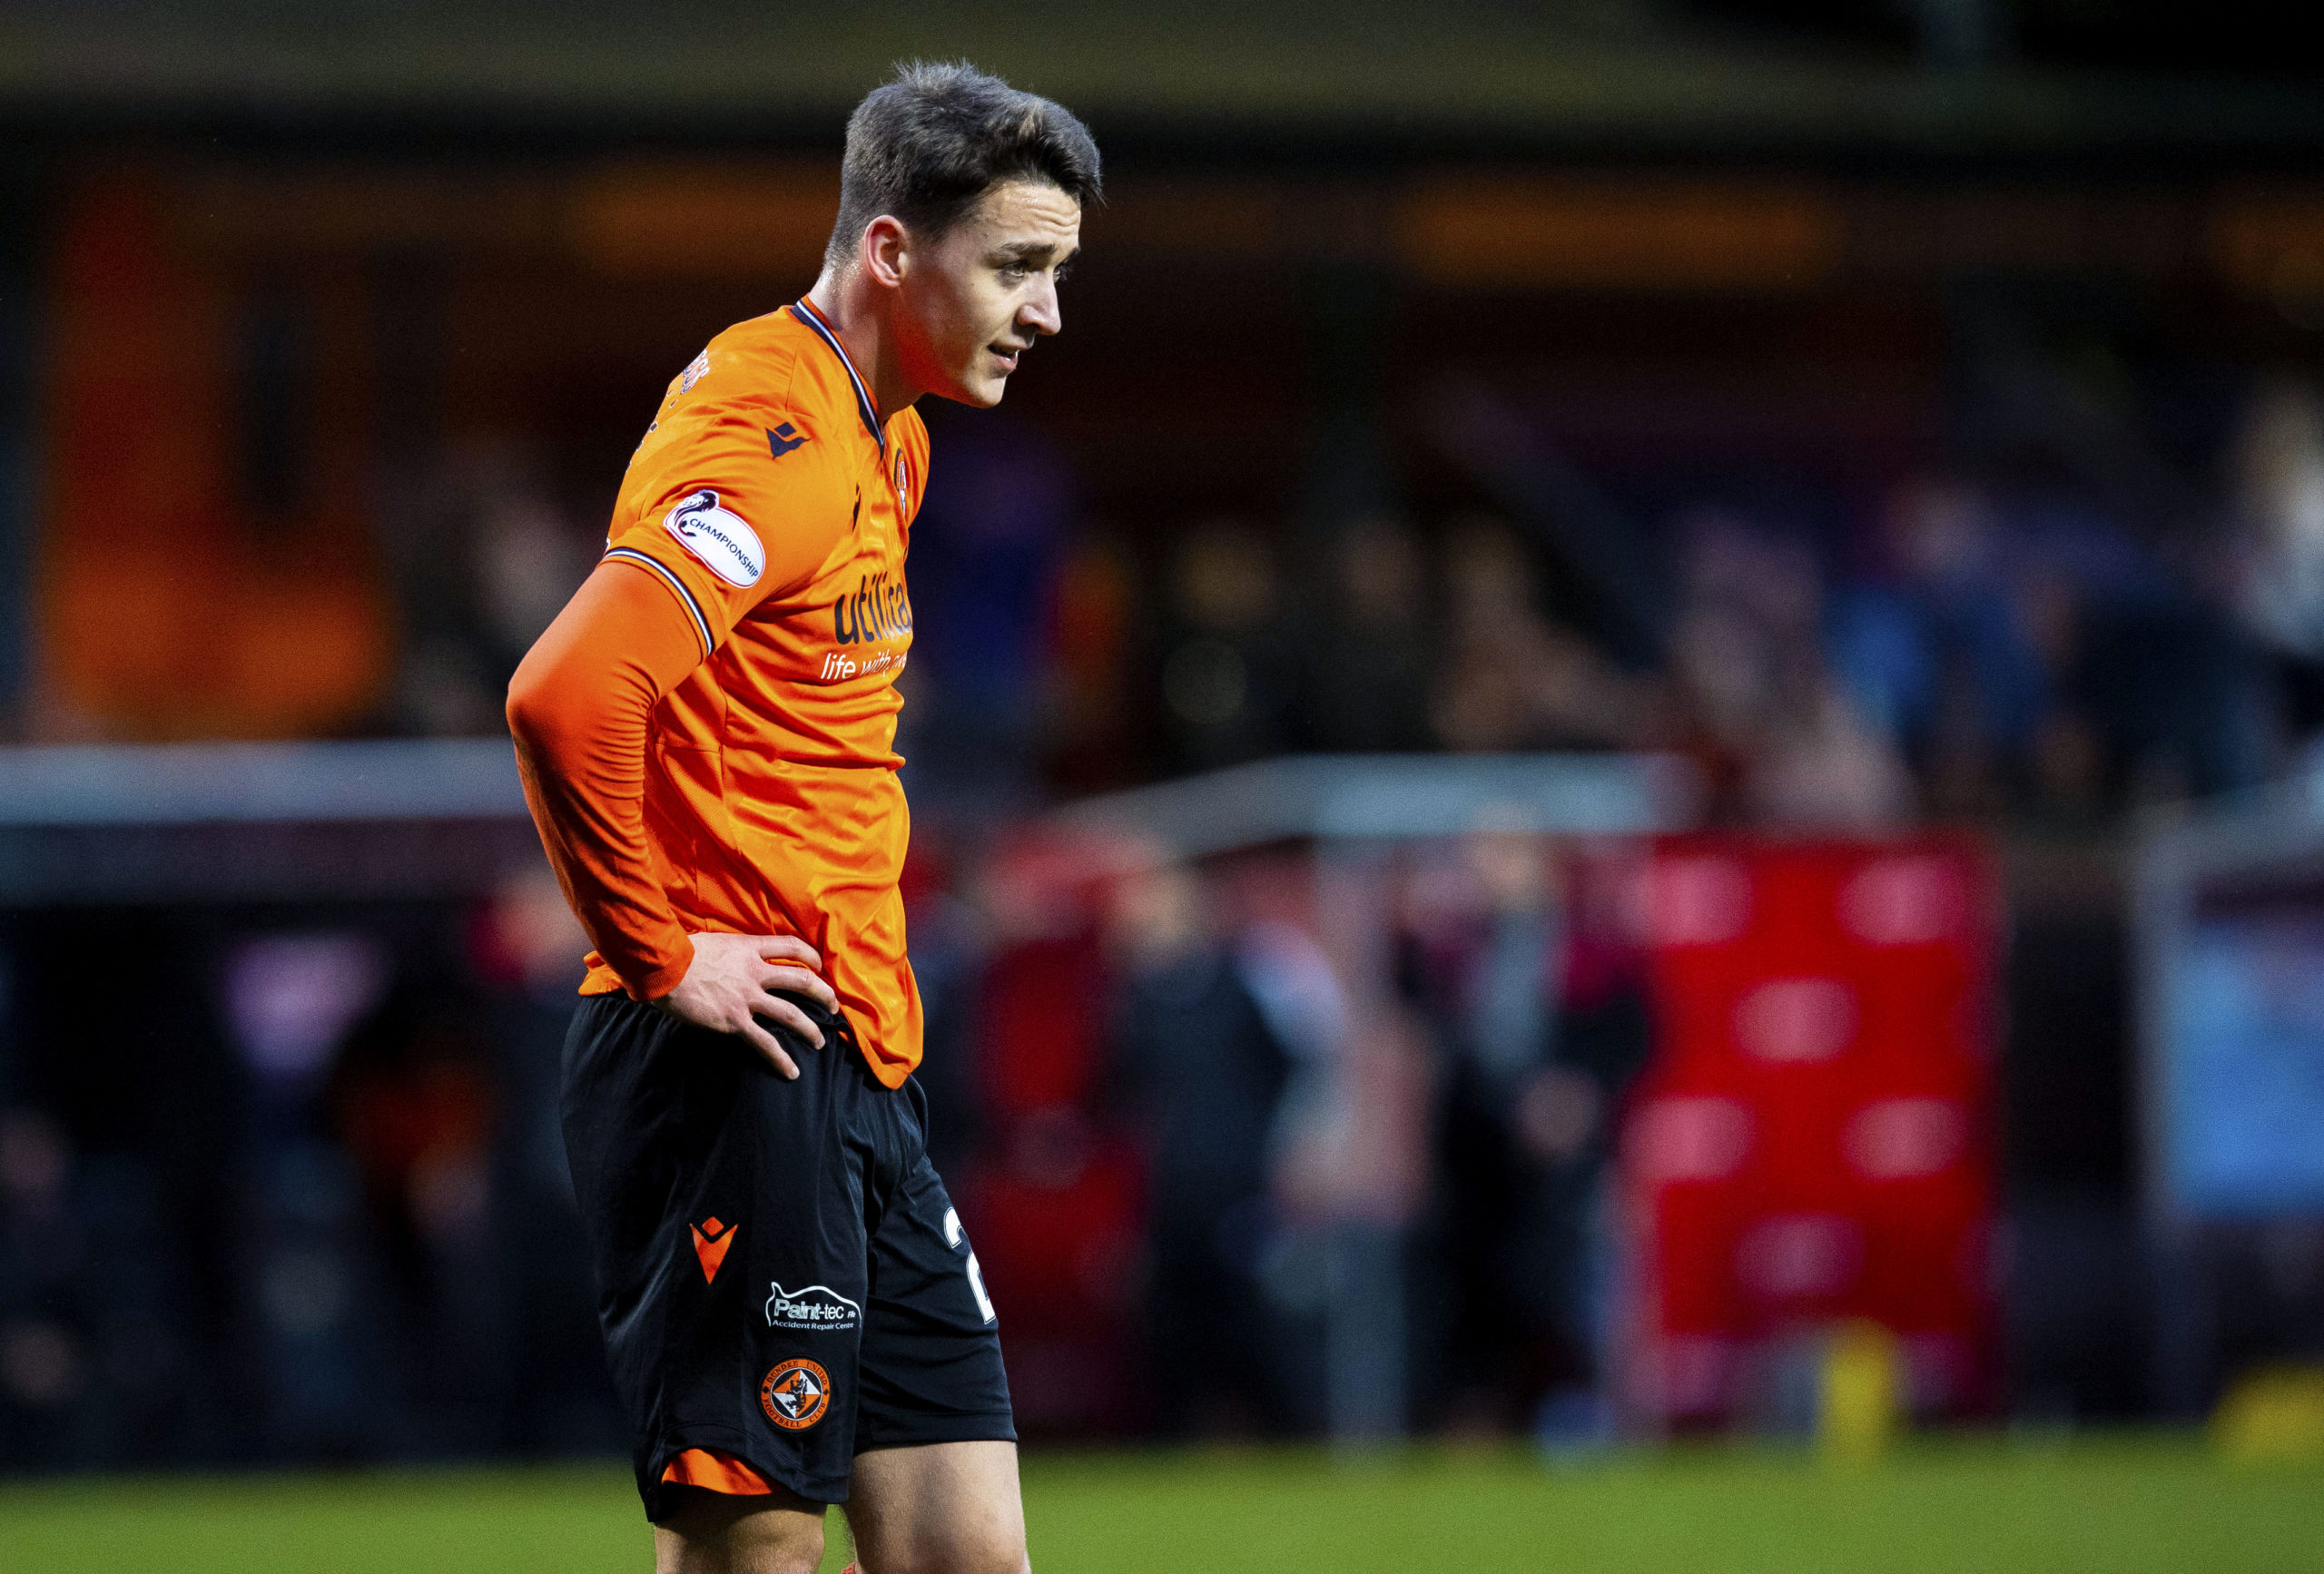 Louis Appere has been outstanding for Dundee United this season.